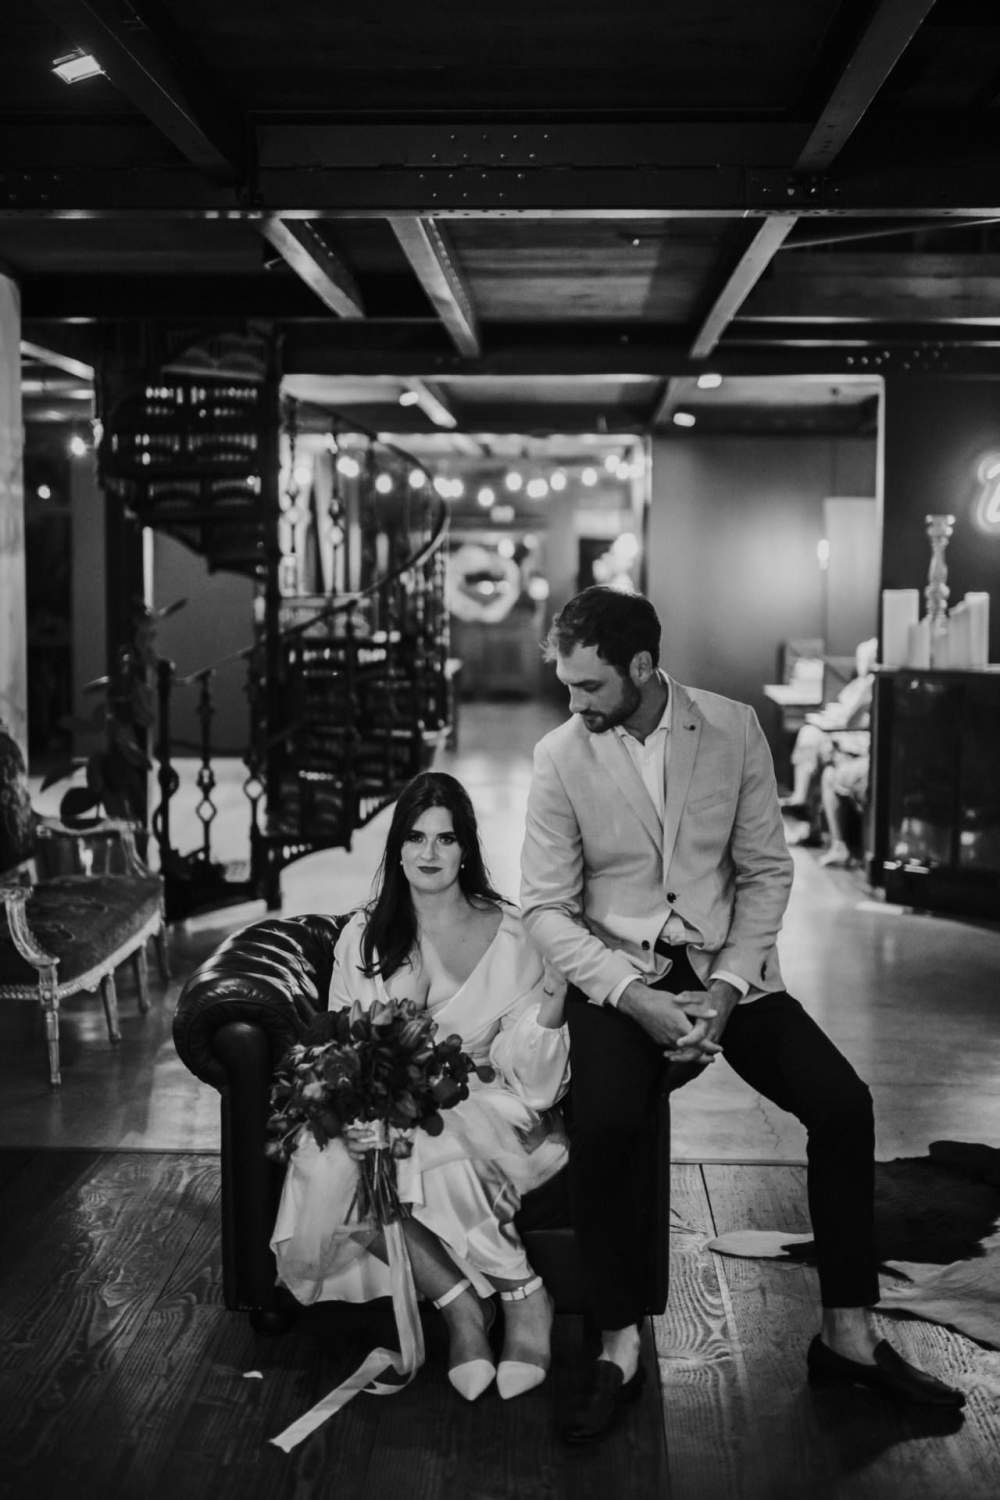 Narrows Landing Night photo of bride and groom sitting on couch